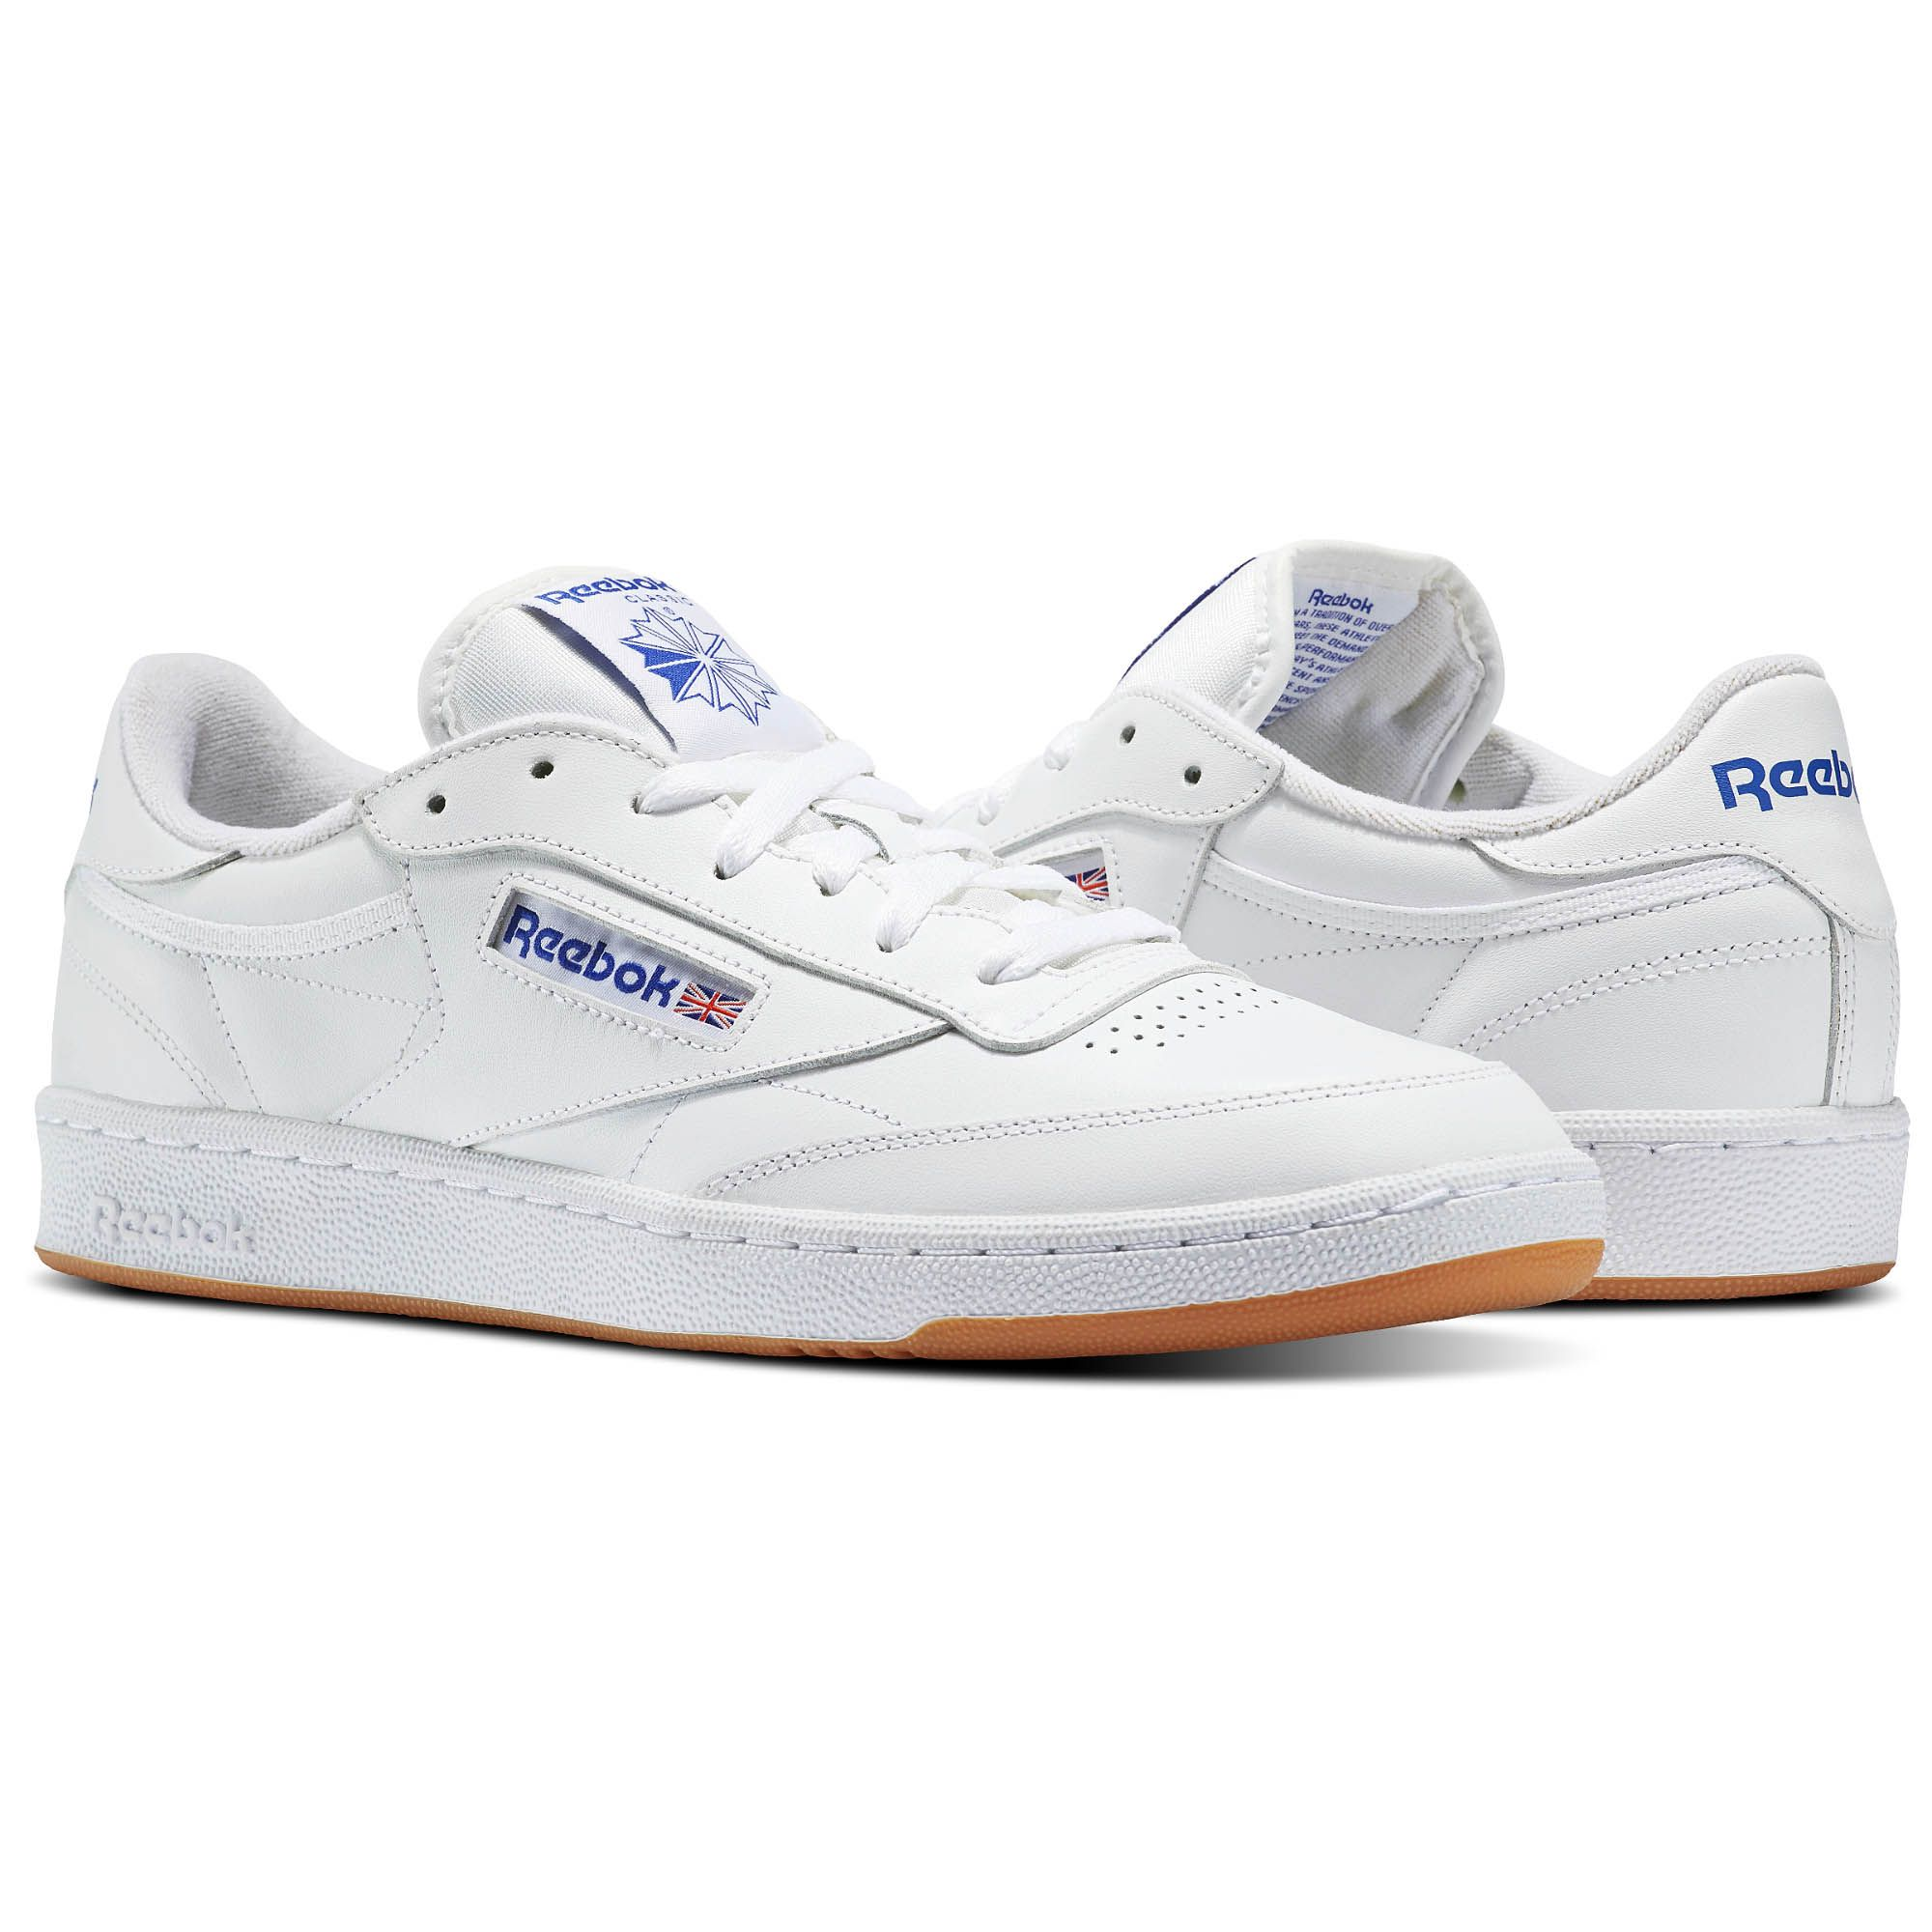 93e39b6eb1f9a The soft leather upper doles out superior support and quality. The midsole  cushions every step and a timeless Reebok window box logo amps ...